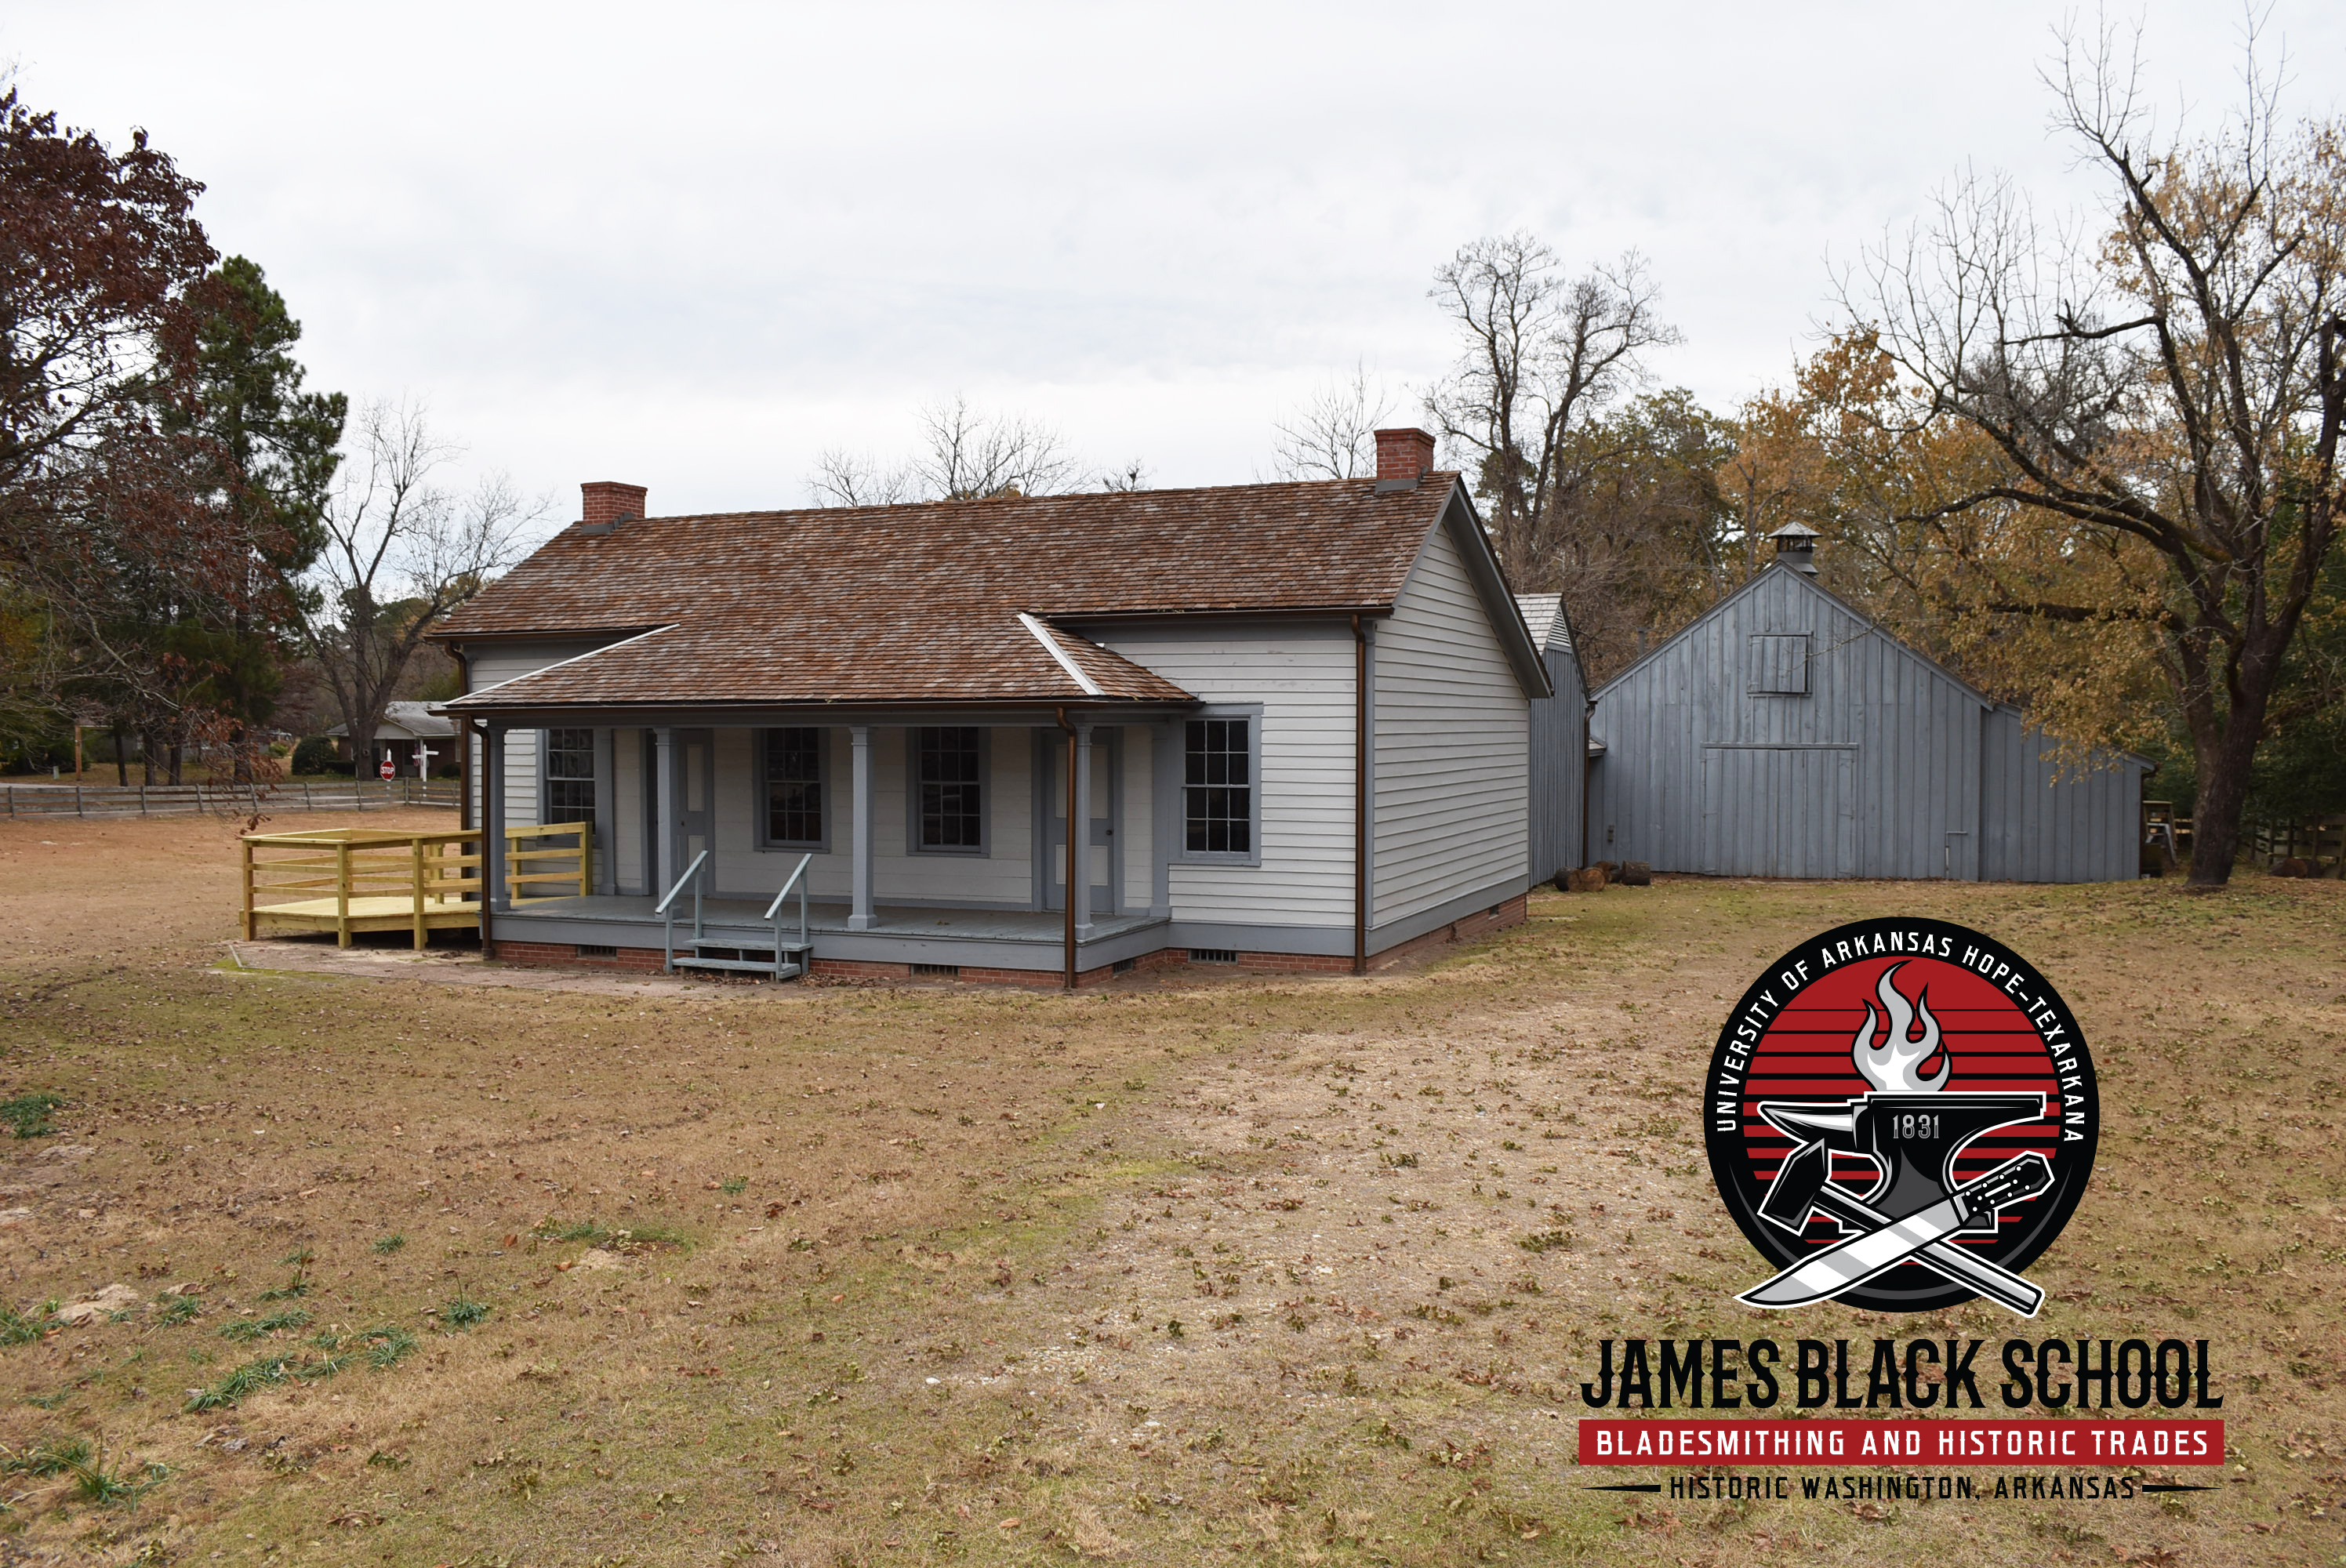 The University of Arkansas Hope-Texarkana James Black School of Bladesmithing and Historic Trades